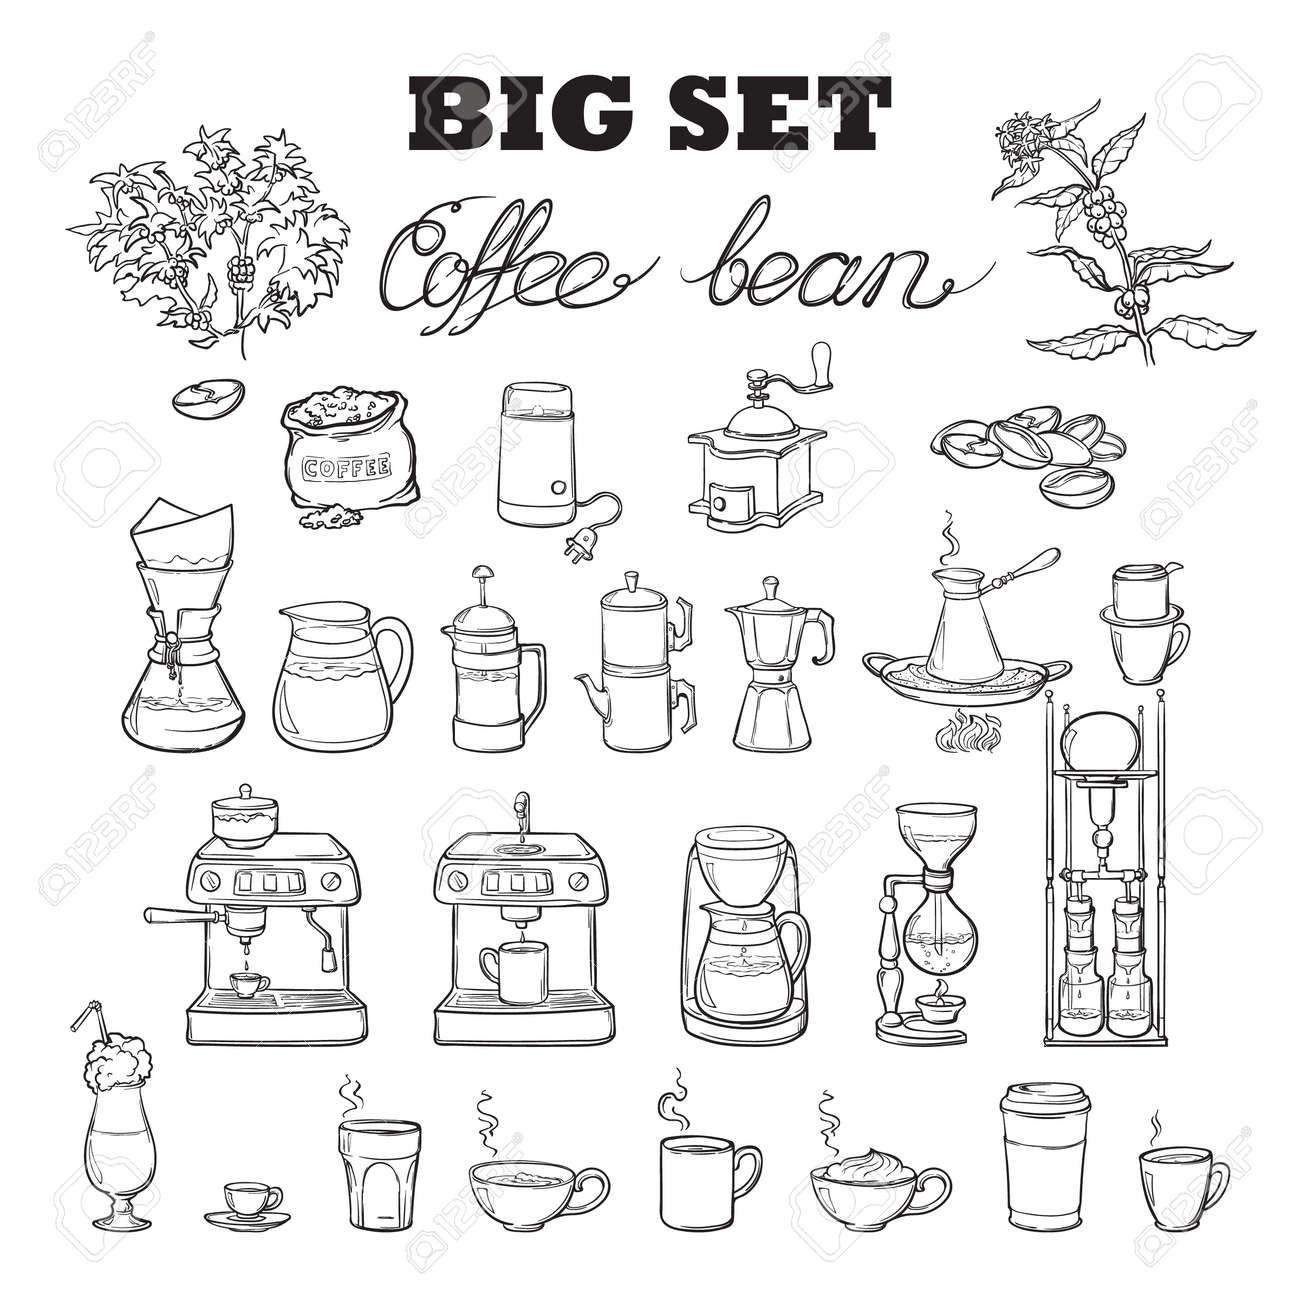 Barista tools set. Equipment for various ways of coffee brewing. Infographics icons. Doodle style pictures. Black sketch isolated on white background. EPS10 vector illustration. - 60141621